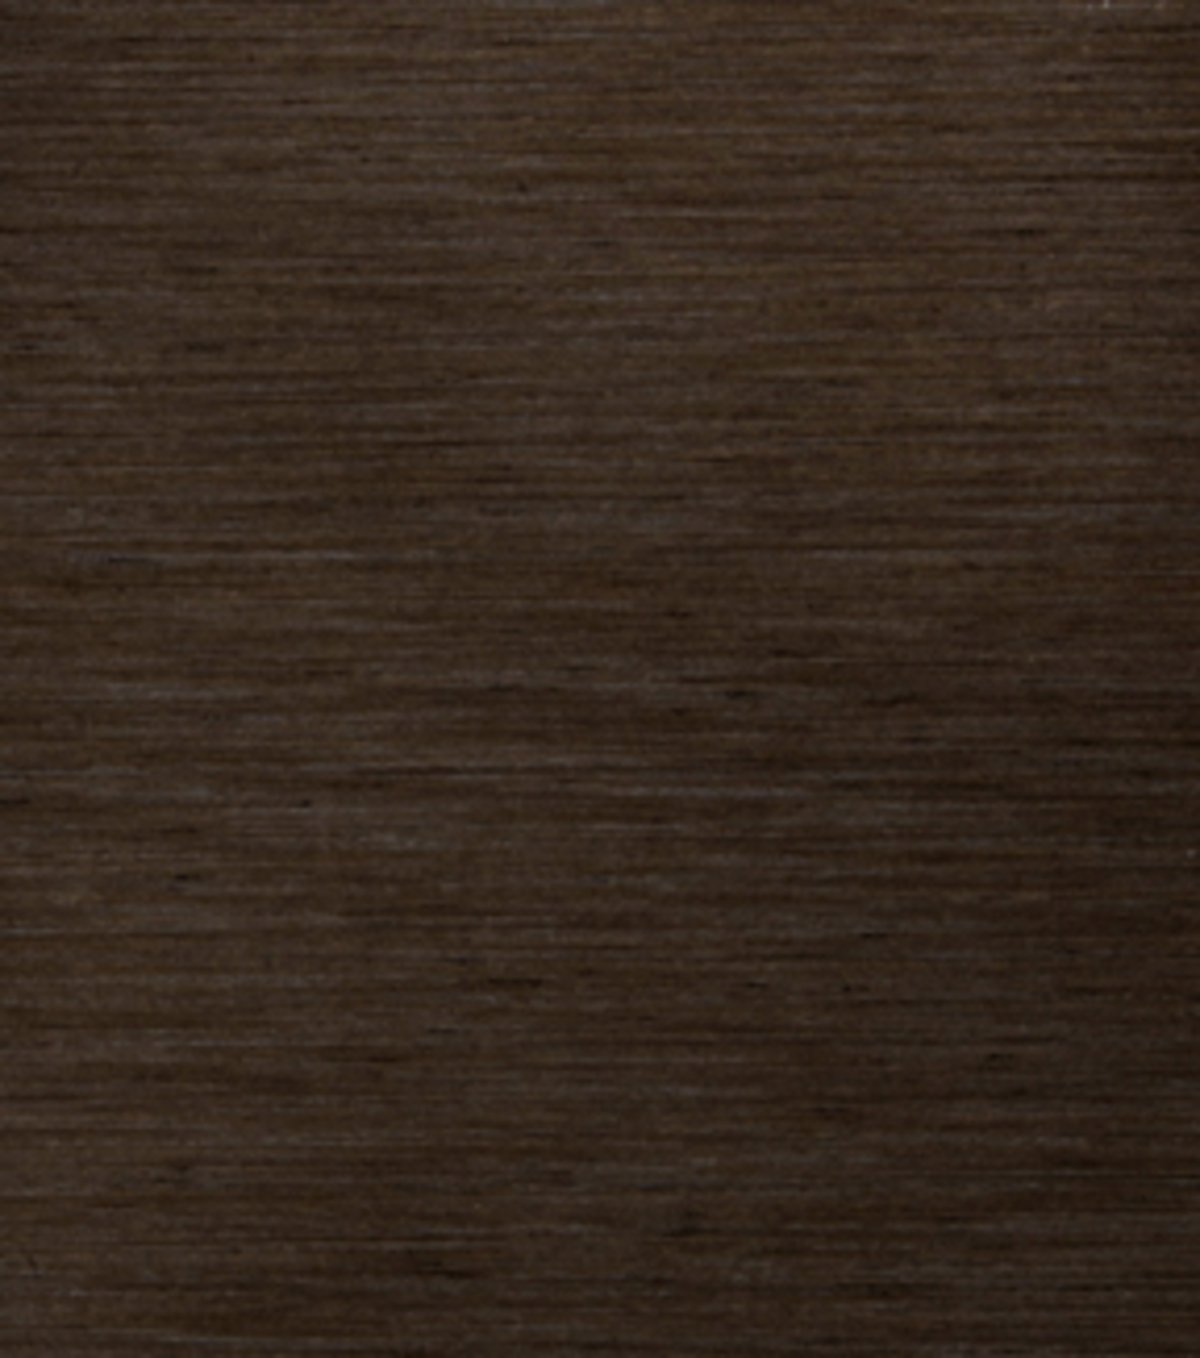 Home Decor 8\u0022x8\u0022 Fabric Swatch--Signature Series Shelburne-Lagoon